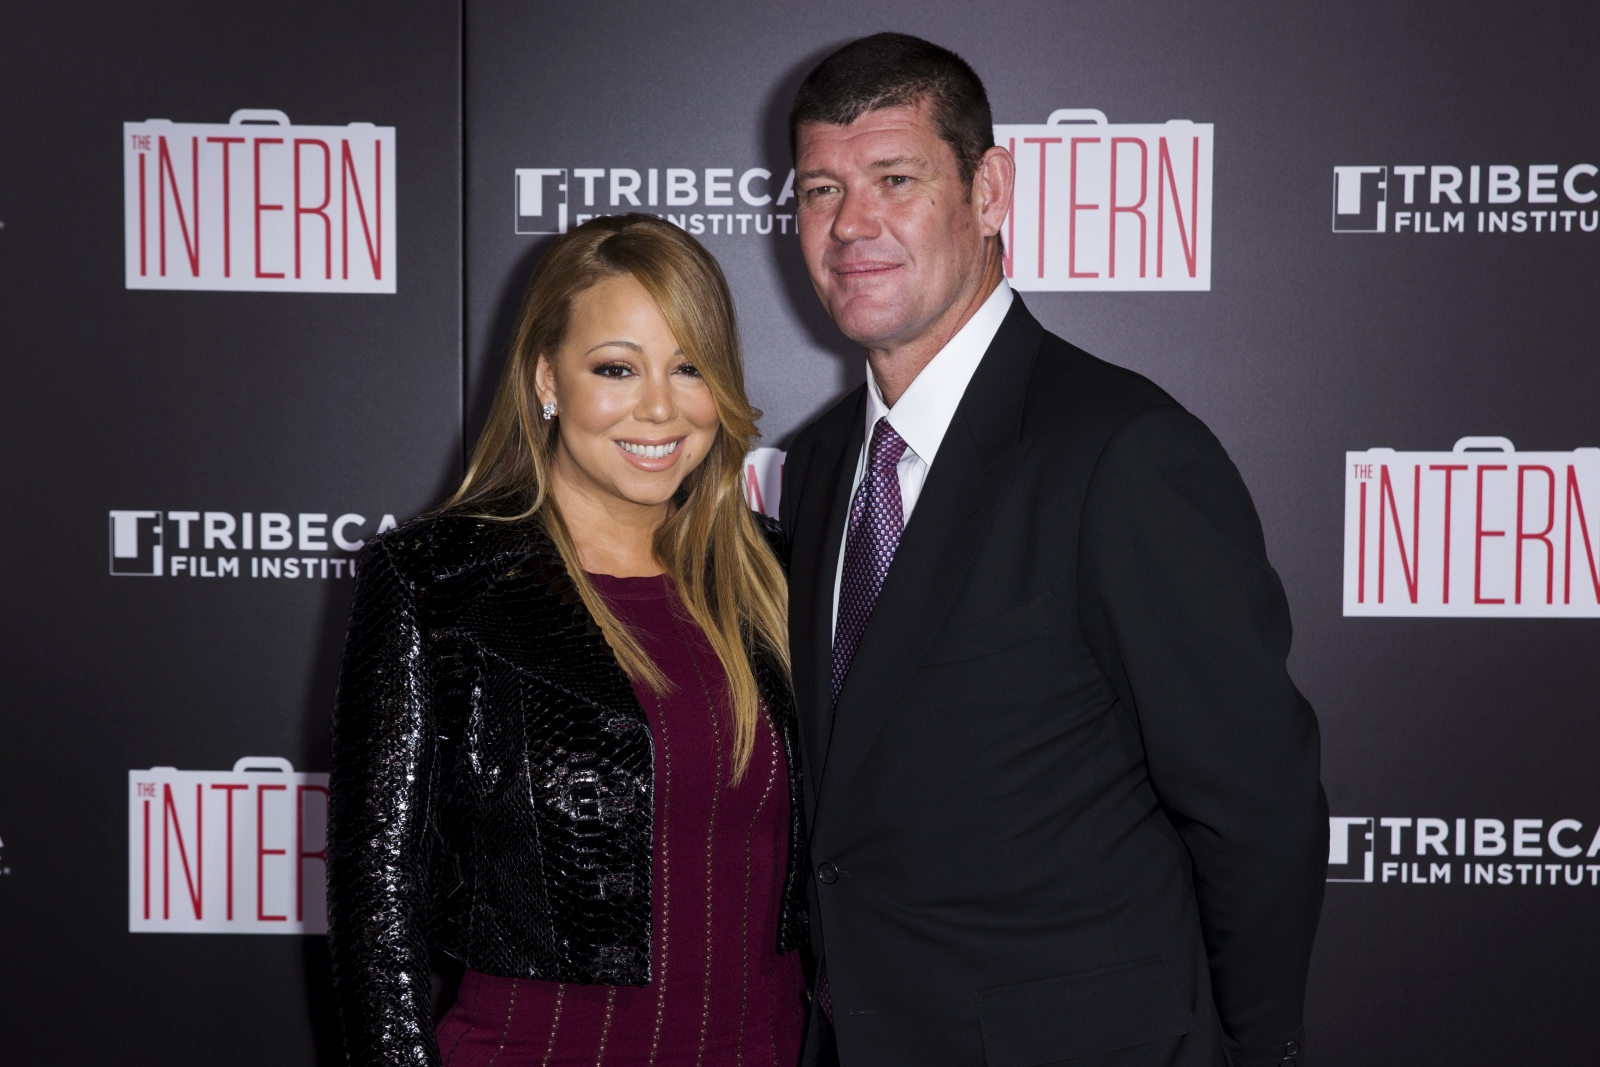 """packer and carey dating The man on superstar mariah carey's arm may be a household name at home but americans are asking themselves: """"james who"""" sources close to the 45-year-old singer told tmz that james packer."""